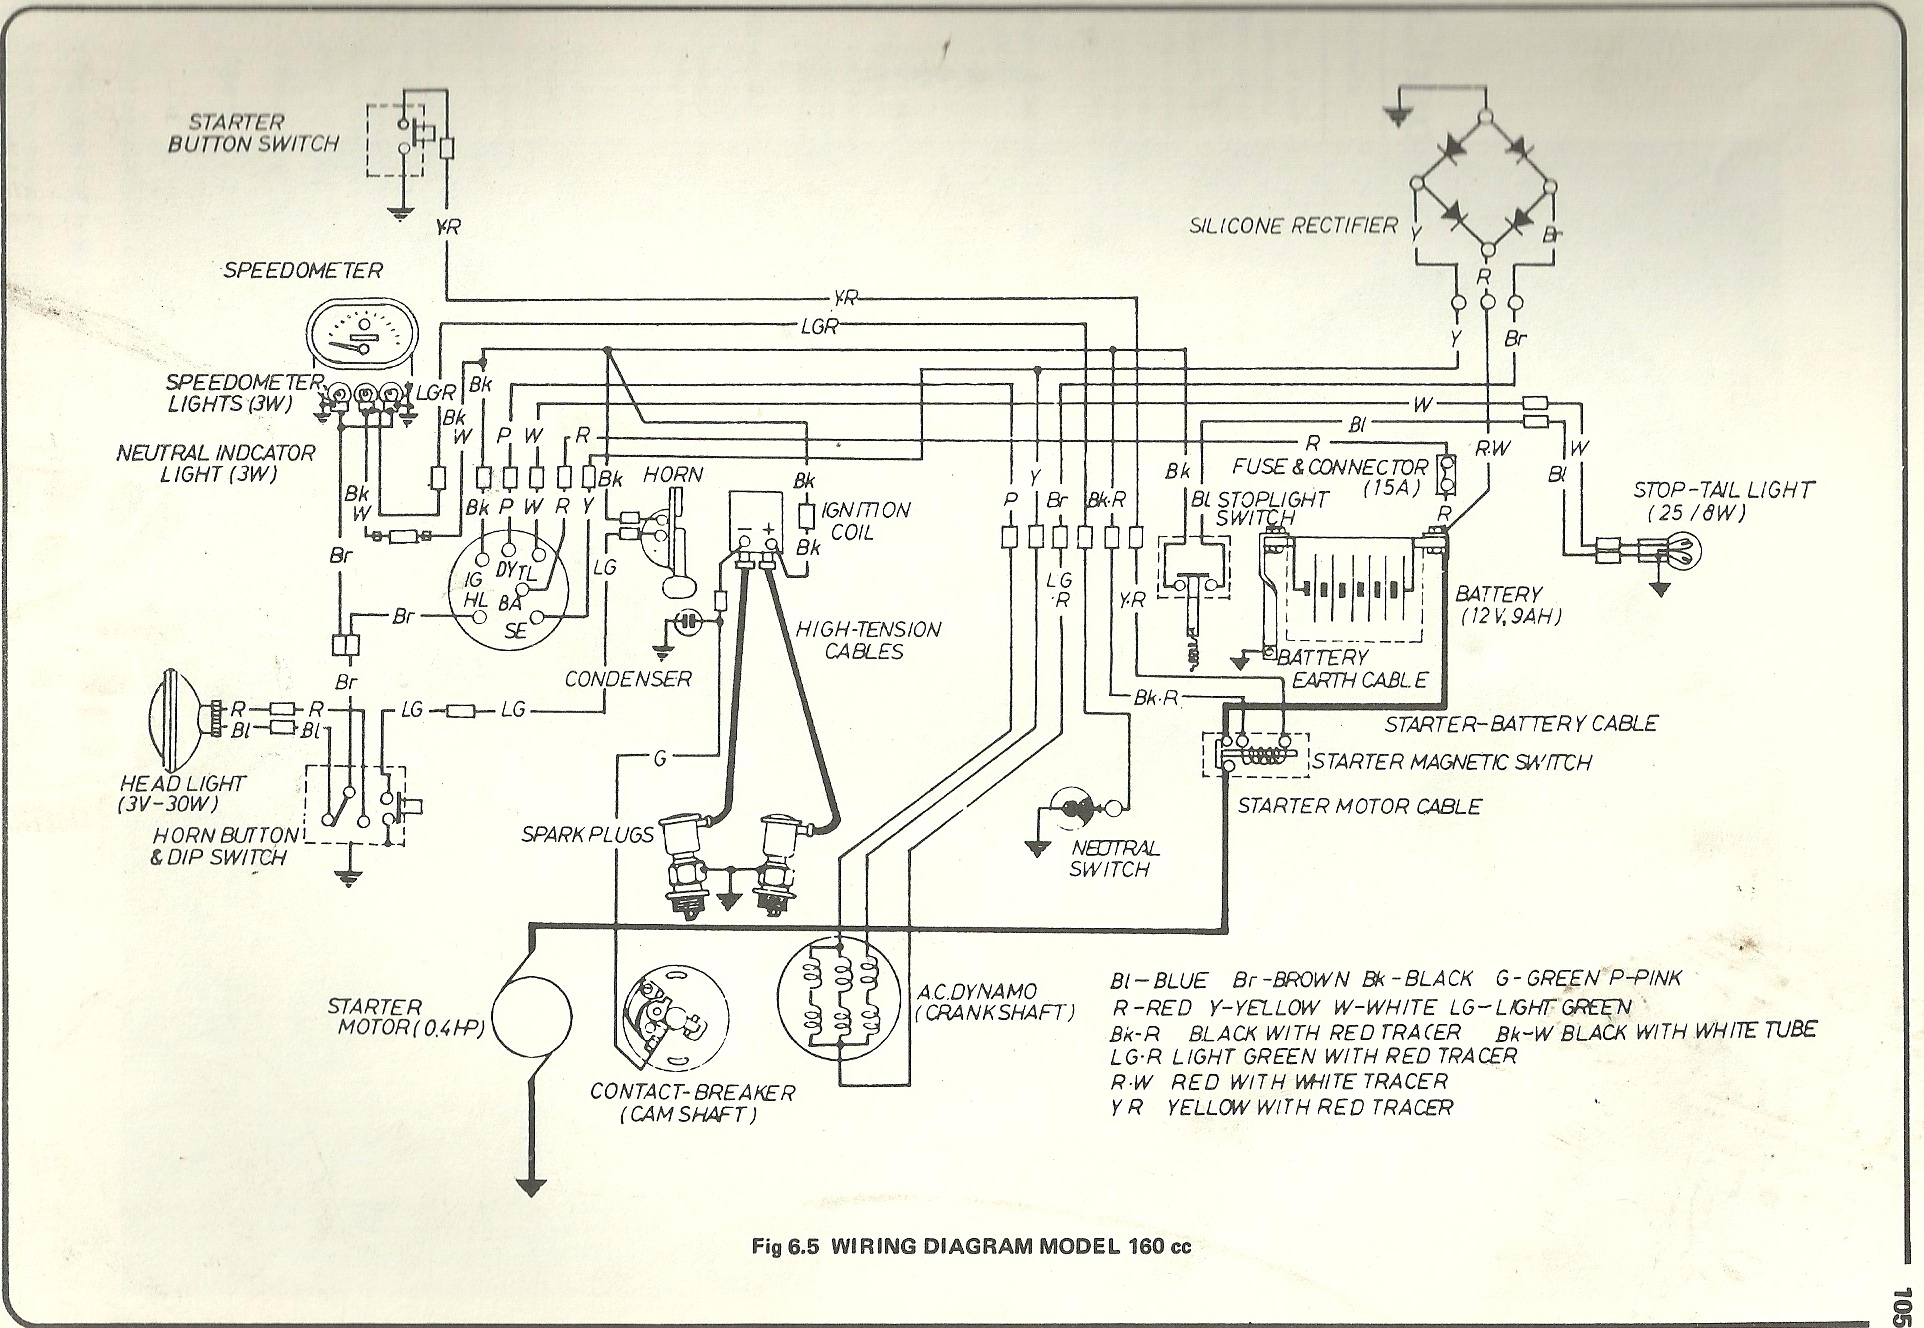 CB1602 wiring diagrams 1981 kawasaki 440 ltd wiring diagram at bayanpartner.co